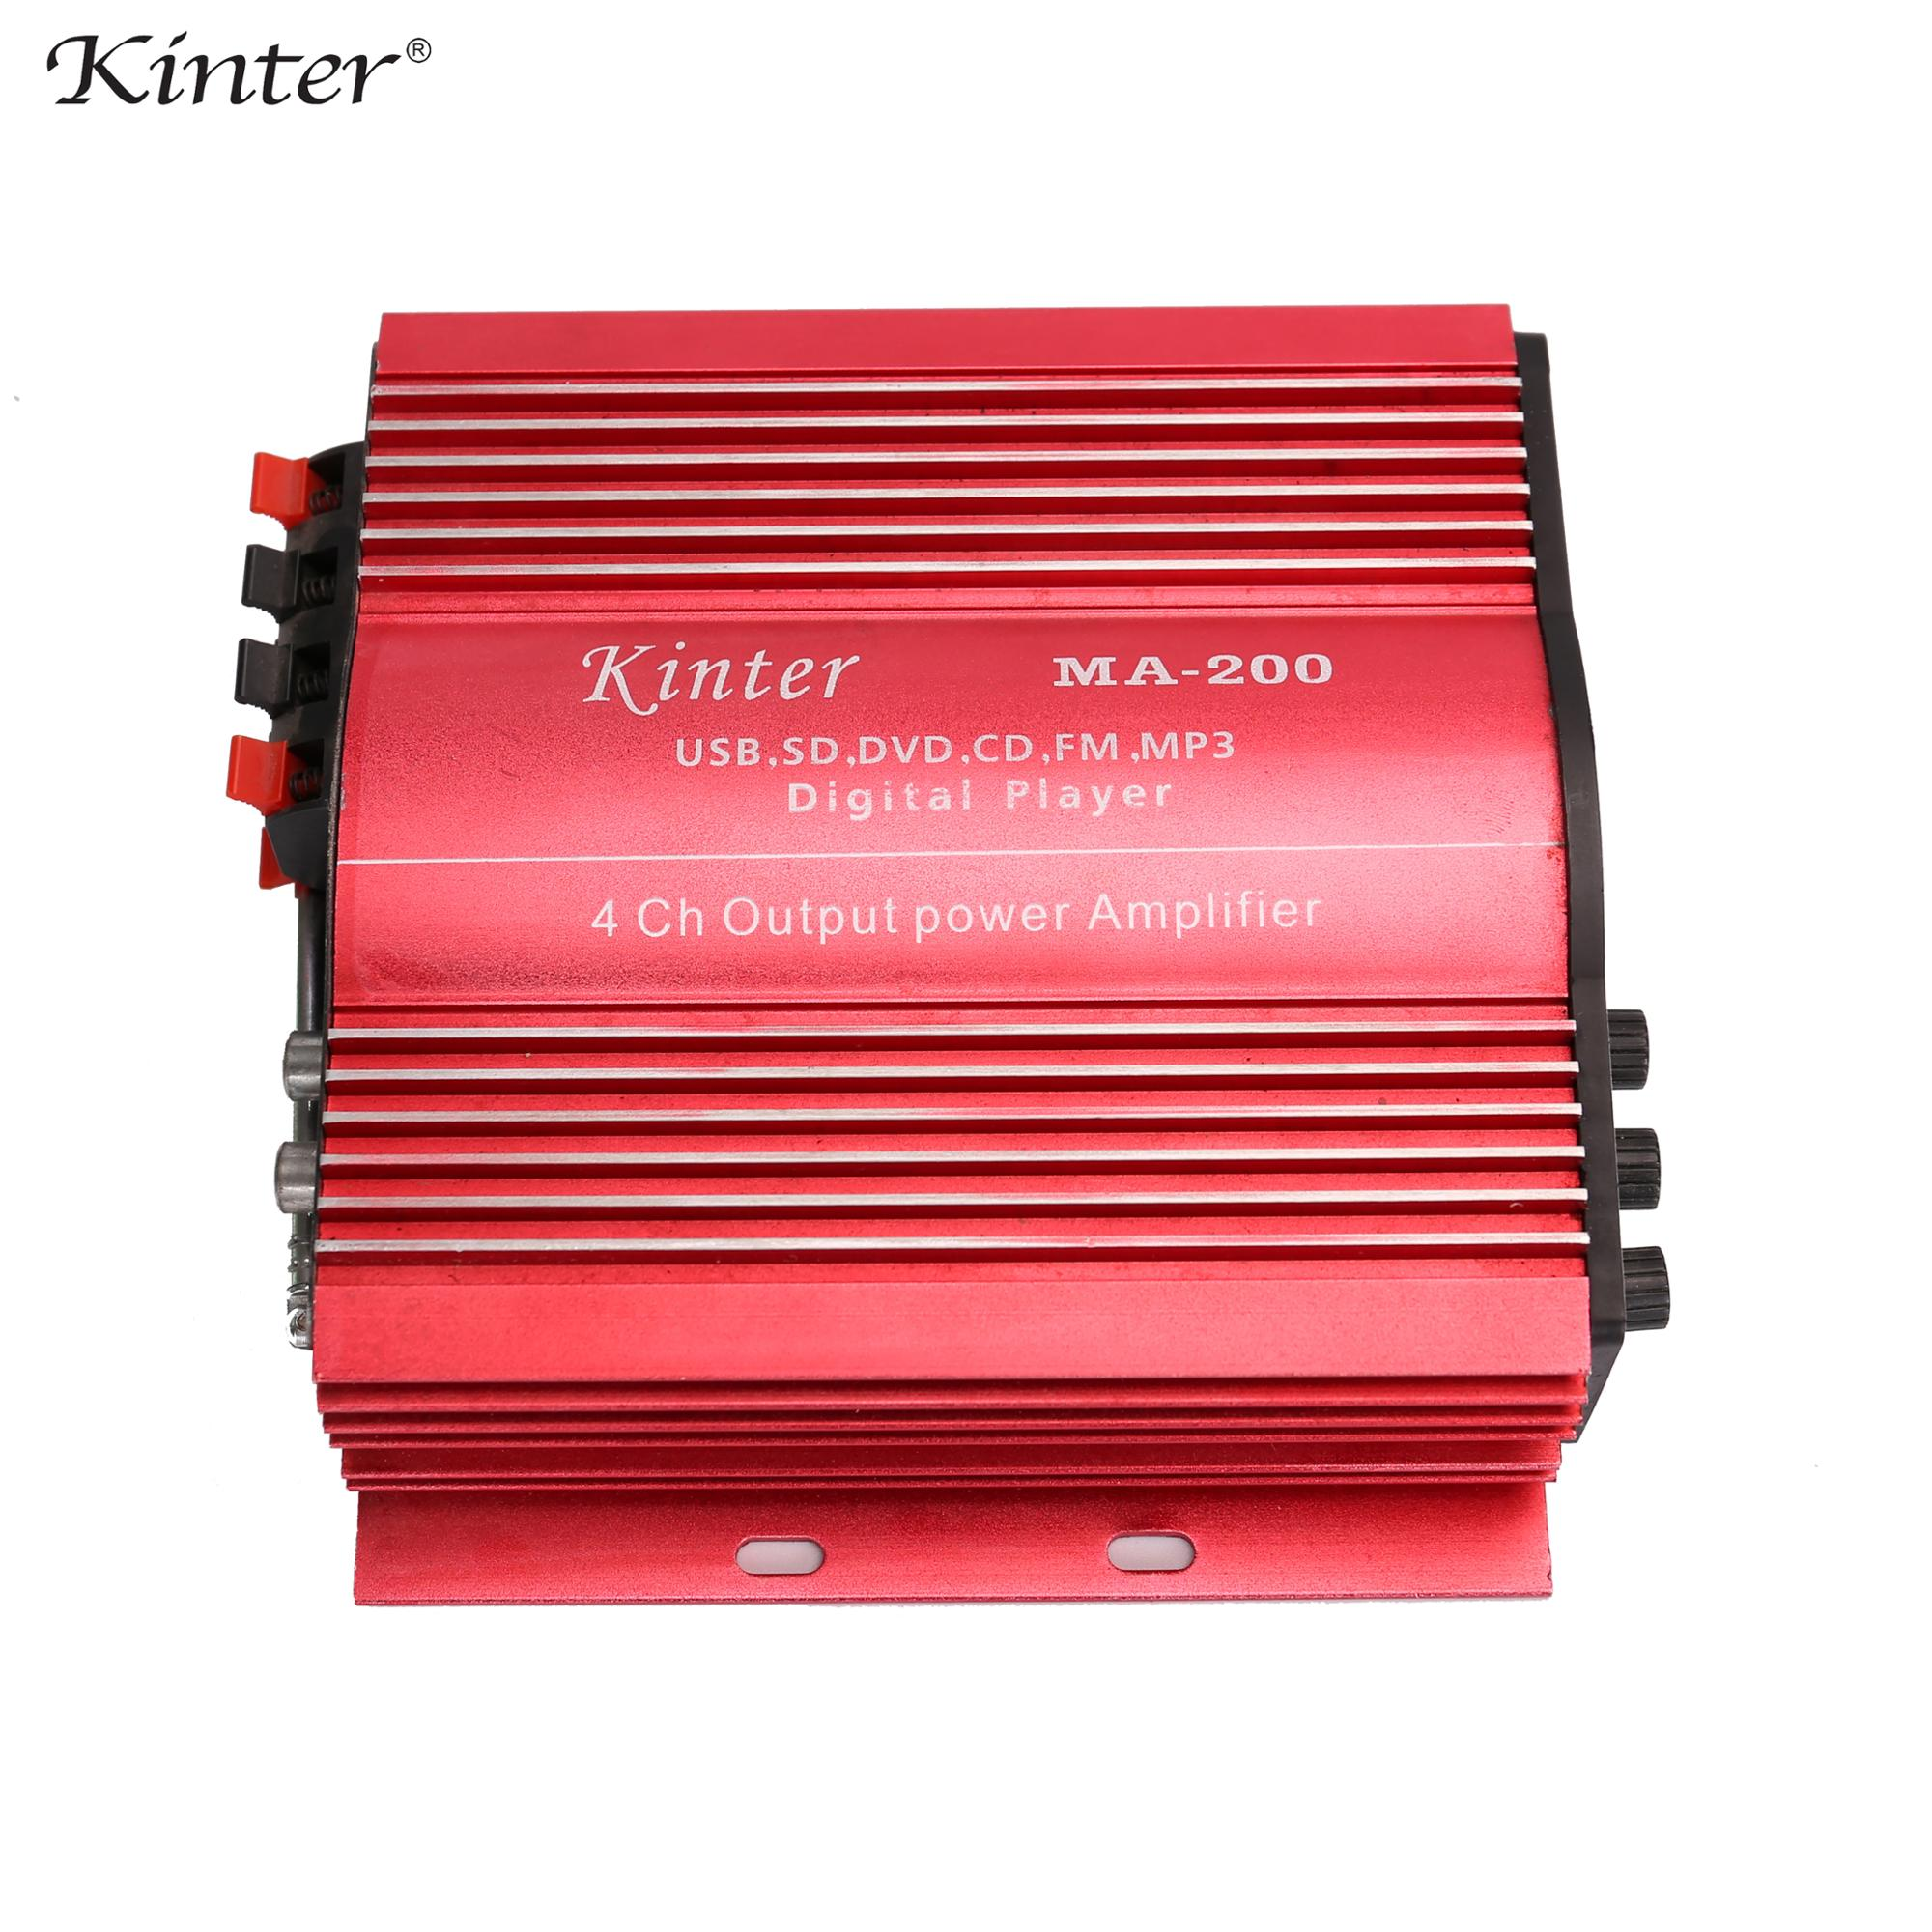 12v Mini Car Amplifier Kinter Ma 200 With Usd Sd Fm Mp3 4 Channel Best Usb And Radio Pink Form A Complete Set